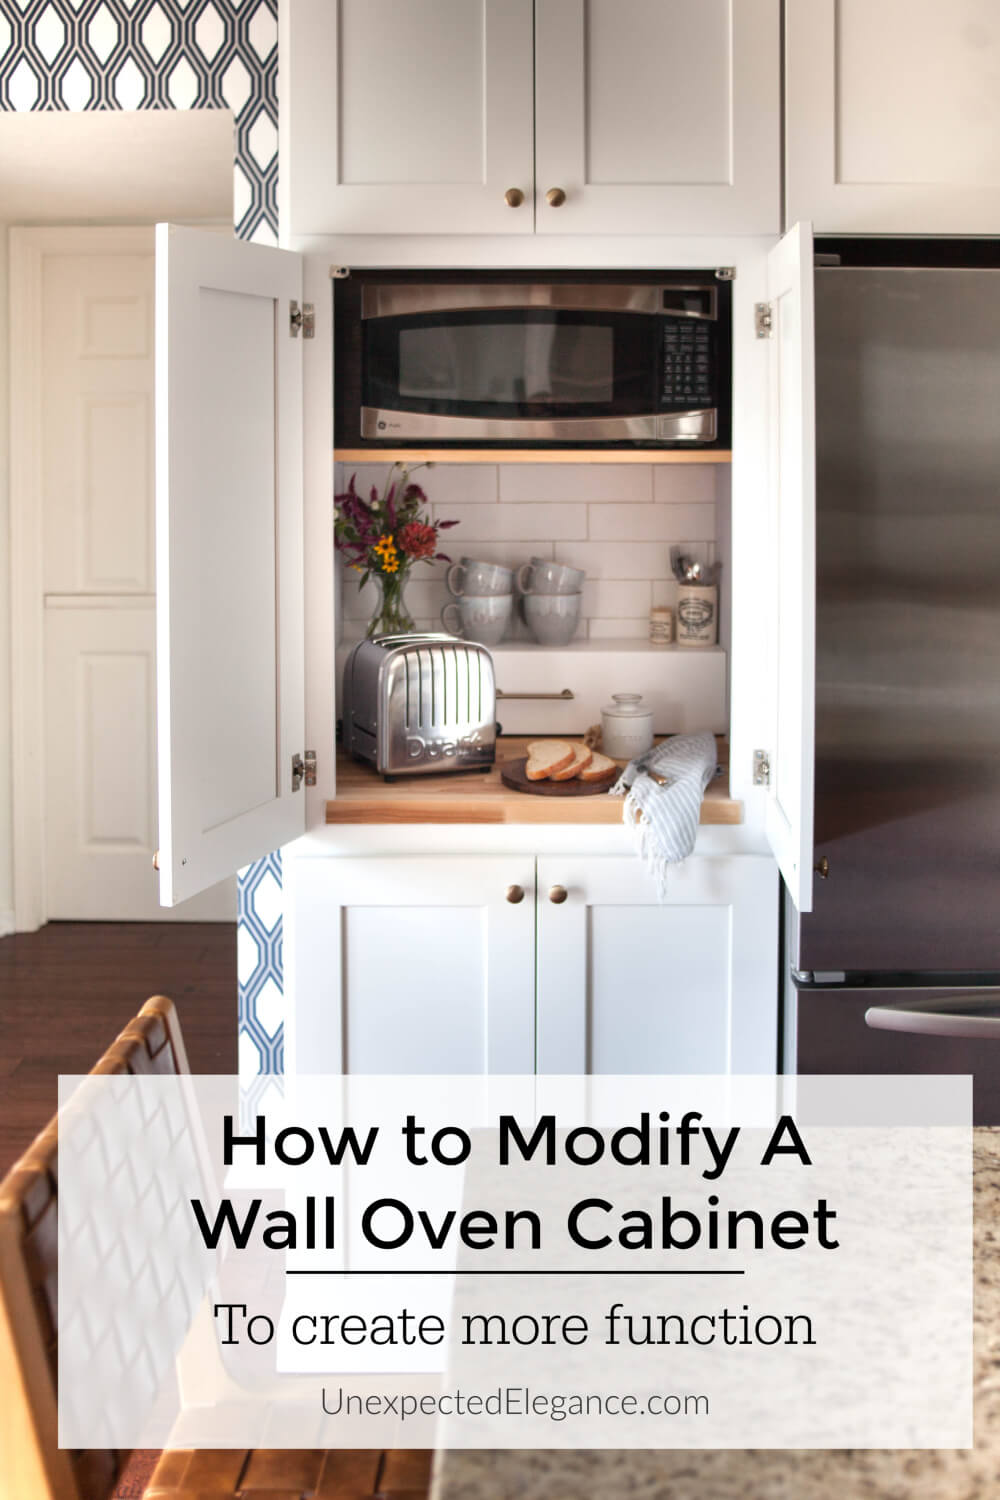 Take your unused wall oven and make it more functional!  See how to modify a single wall oven cabinet to house your small appliances and give you some extra countertop space.